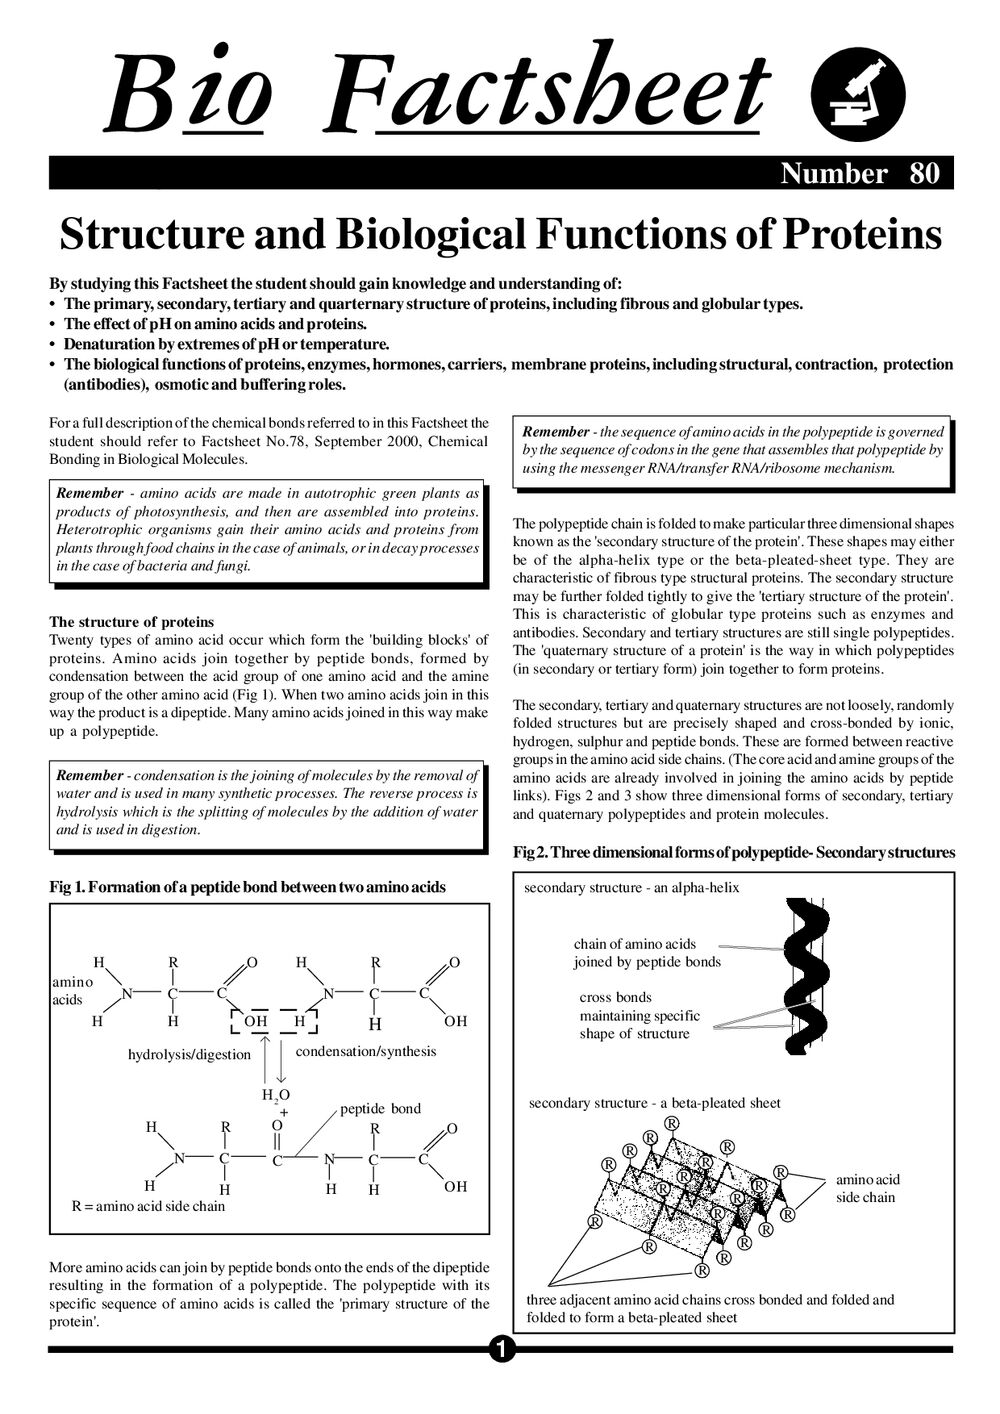 structure and biological functions of proteins